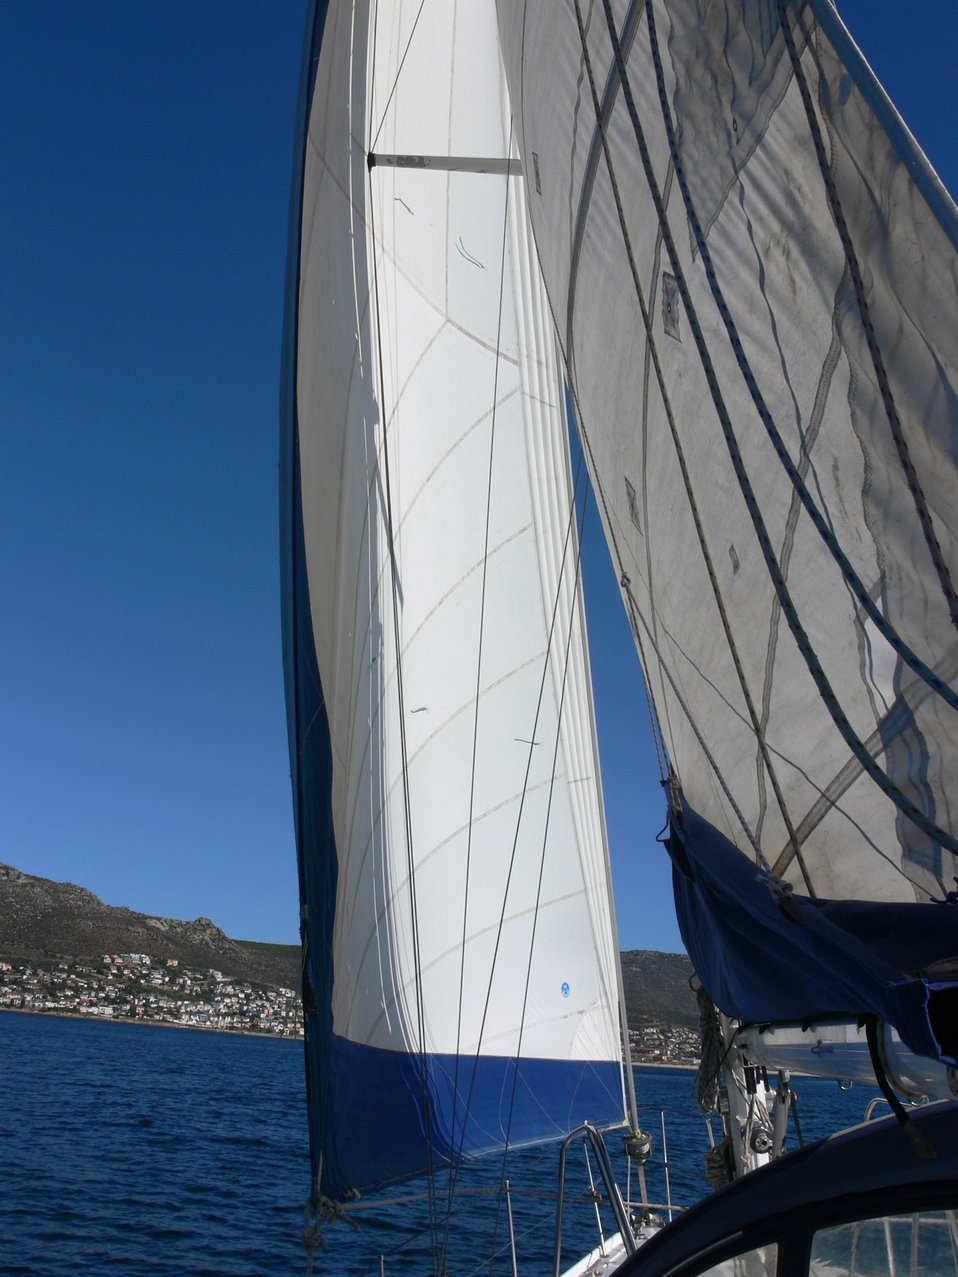 Behind the sails